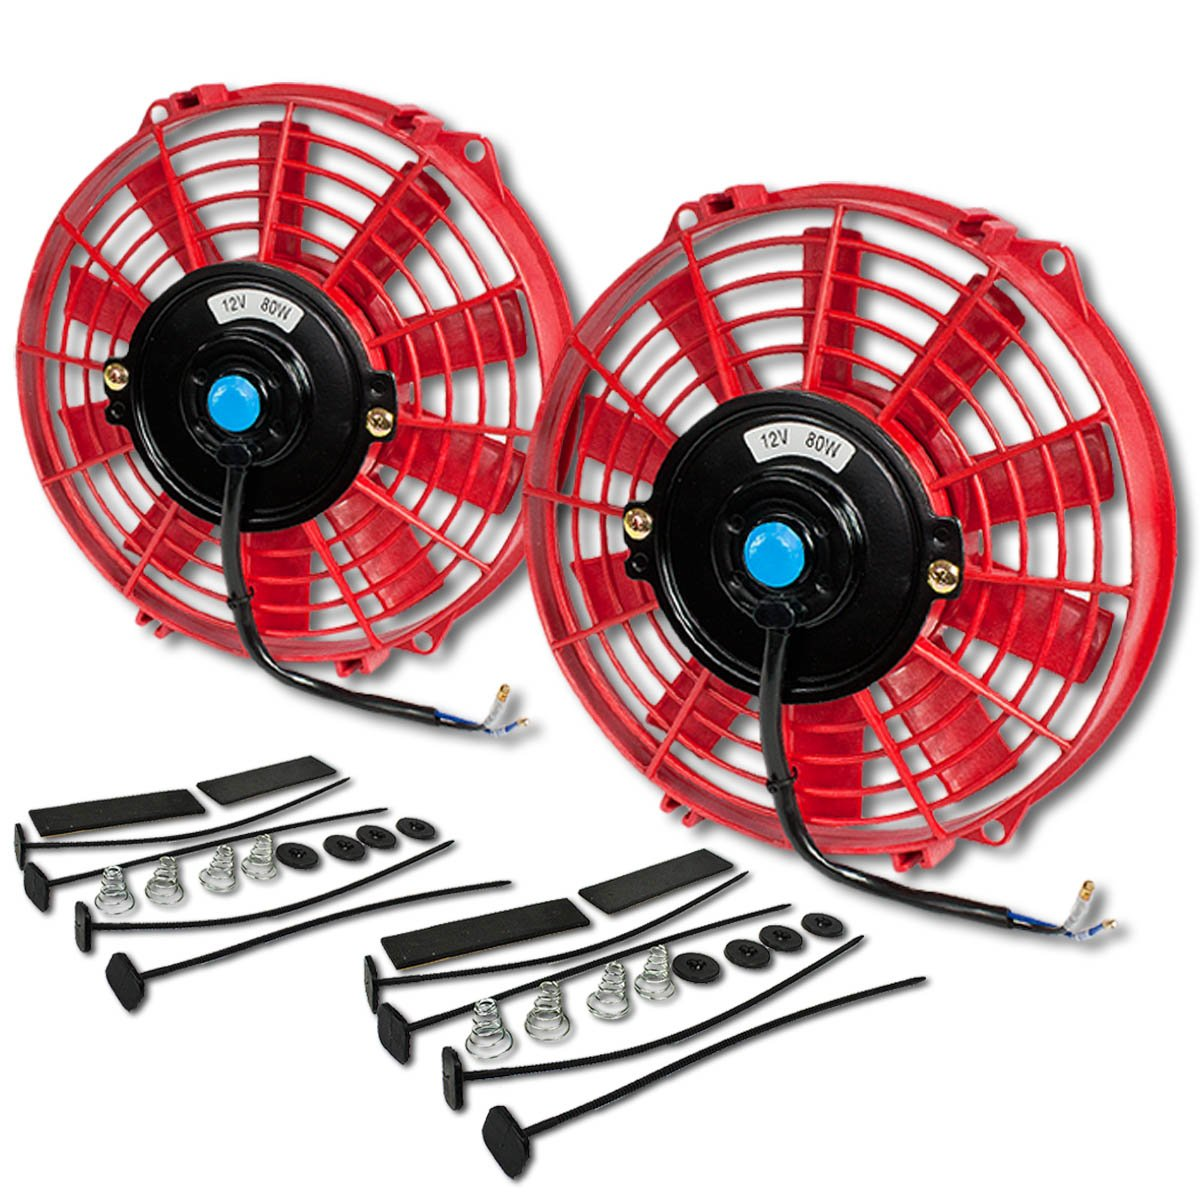 (Pack of 2) 9 Inch High Performance 12V Electric Slim Radiator Cooling Fan w/Mounting Kit - Red